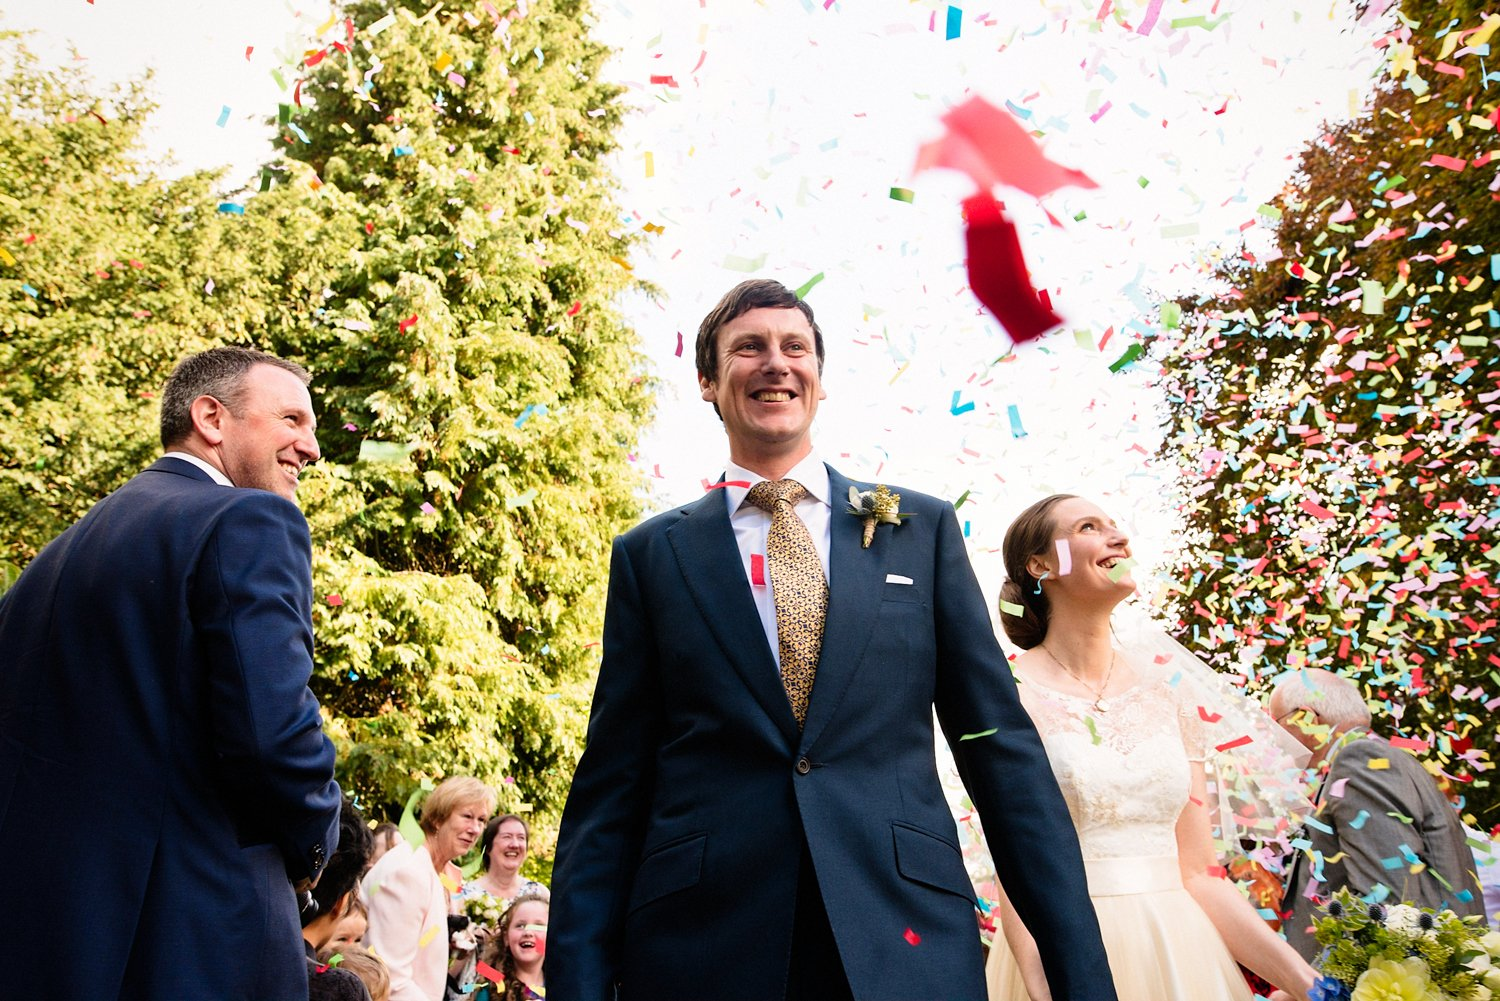 Cad and the Dandy groom covered in confetti